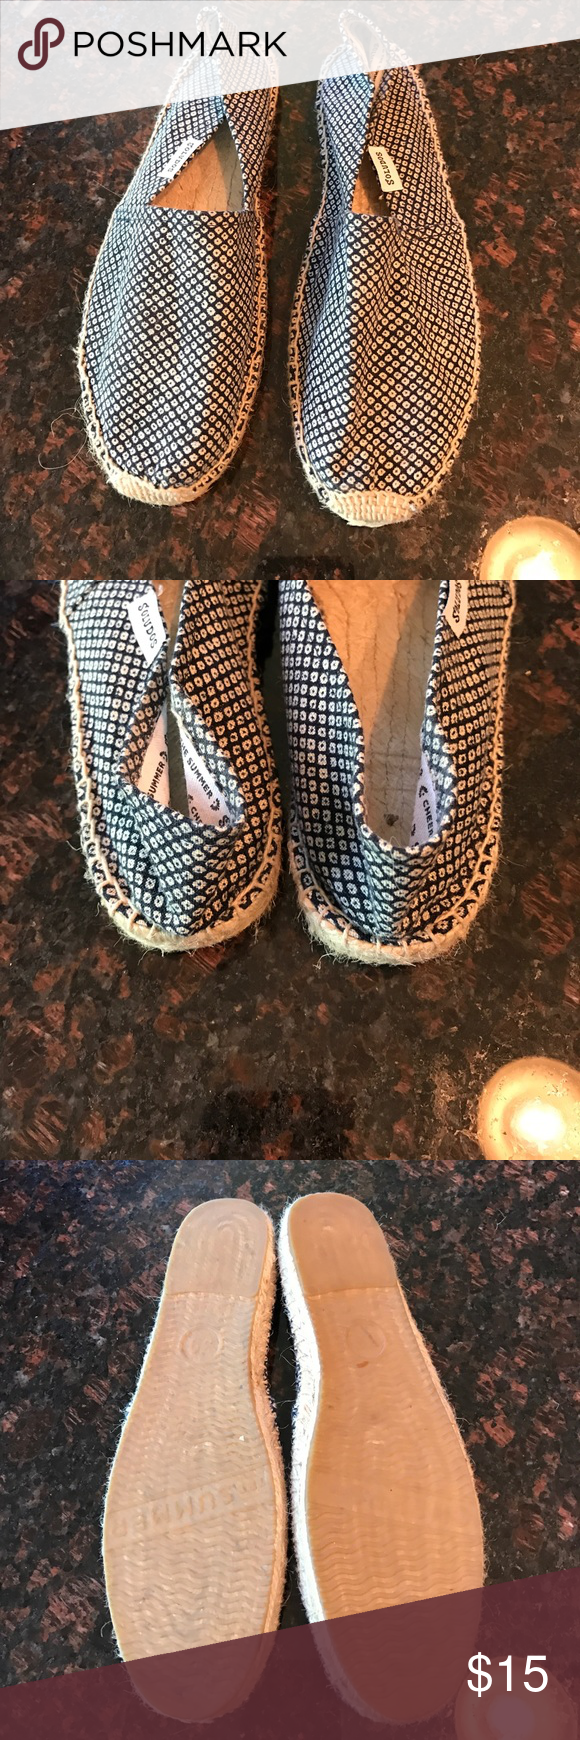 Soludos espadrille Navy/white patterned. Size 9 but fits like an 8. Soludos Shoes Espadrilles